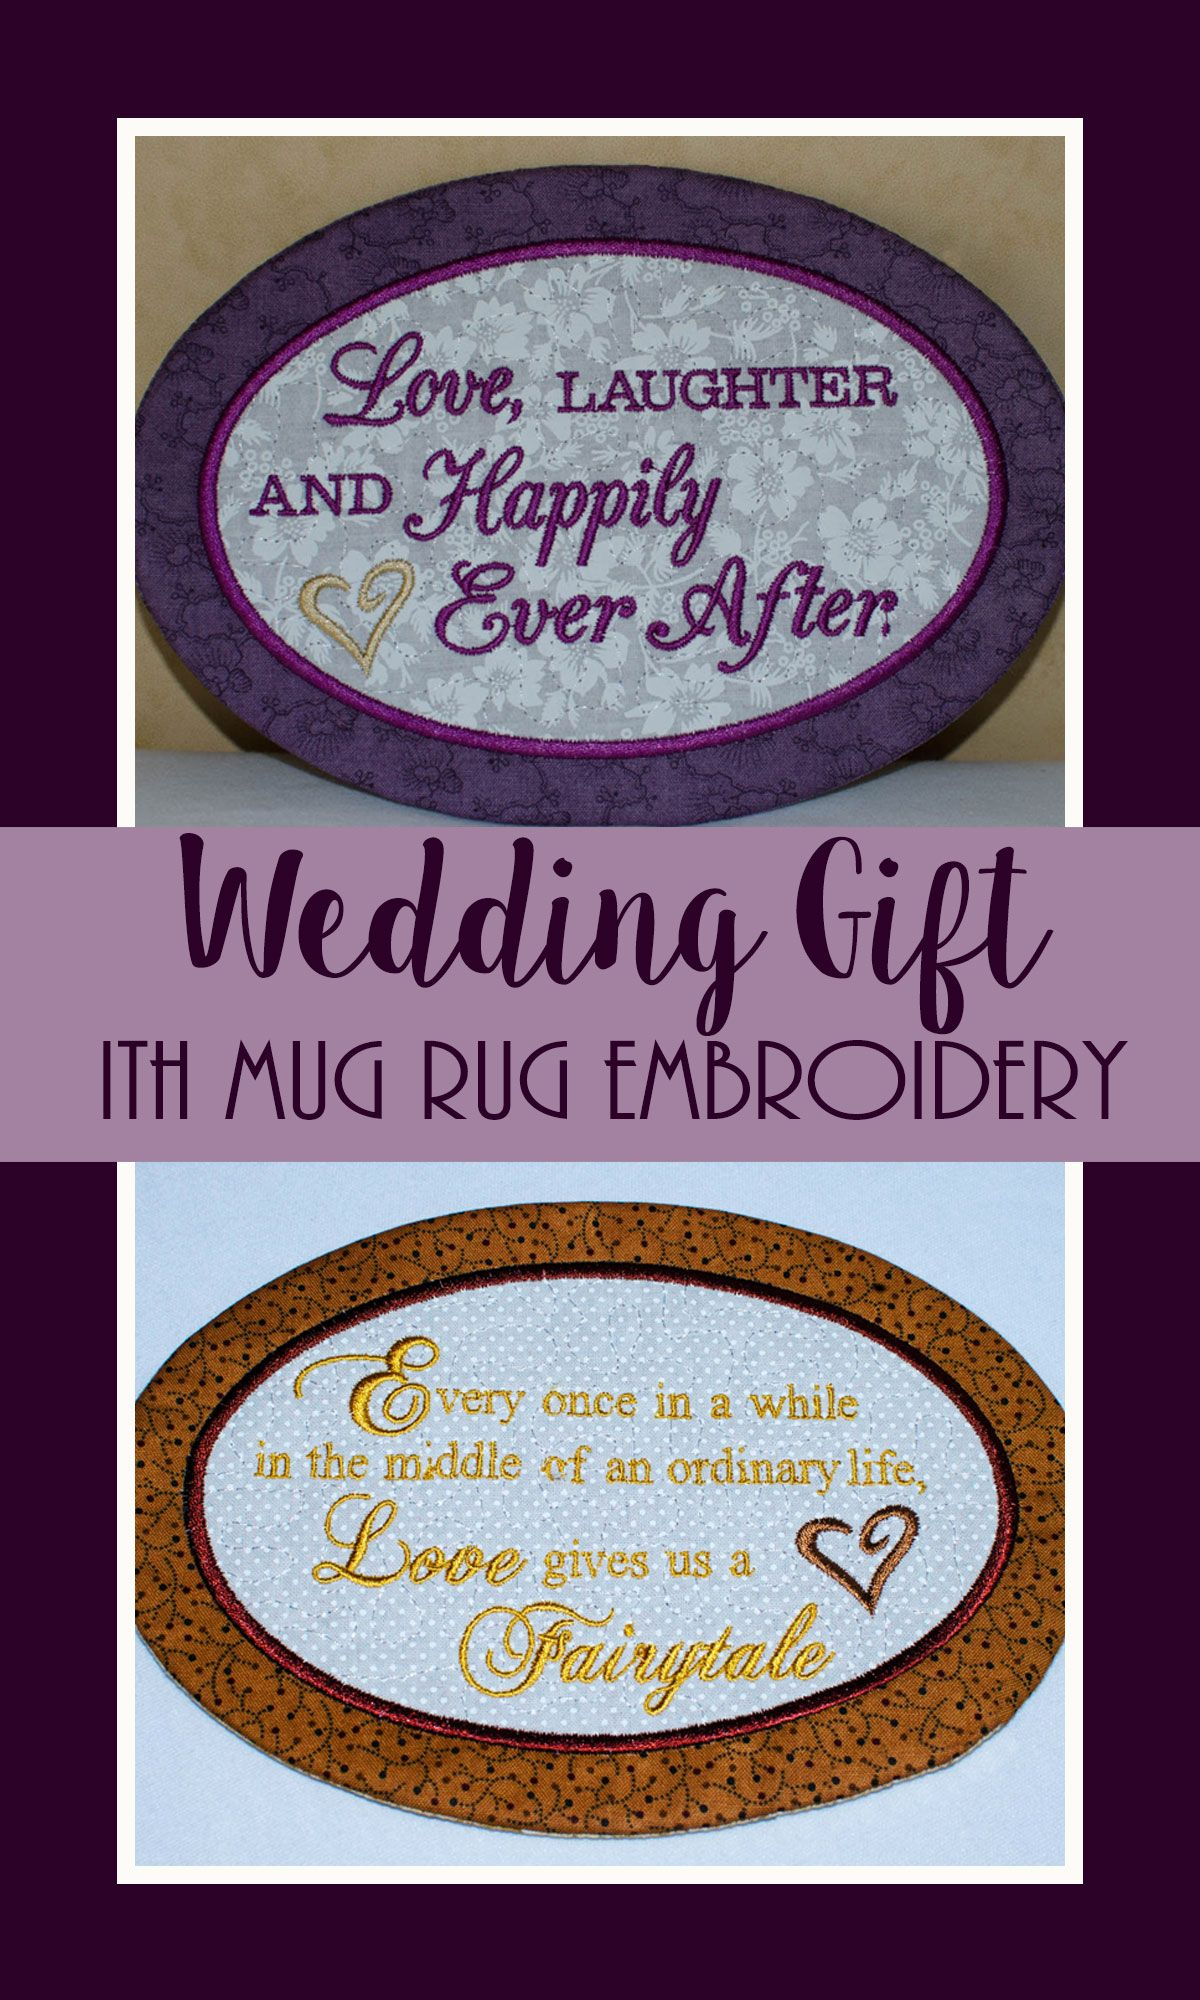 ITH Mug Rug Embroidery Design Love Laughter and Happily Ever After